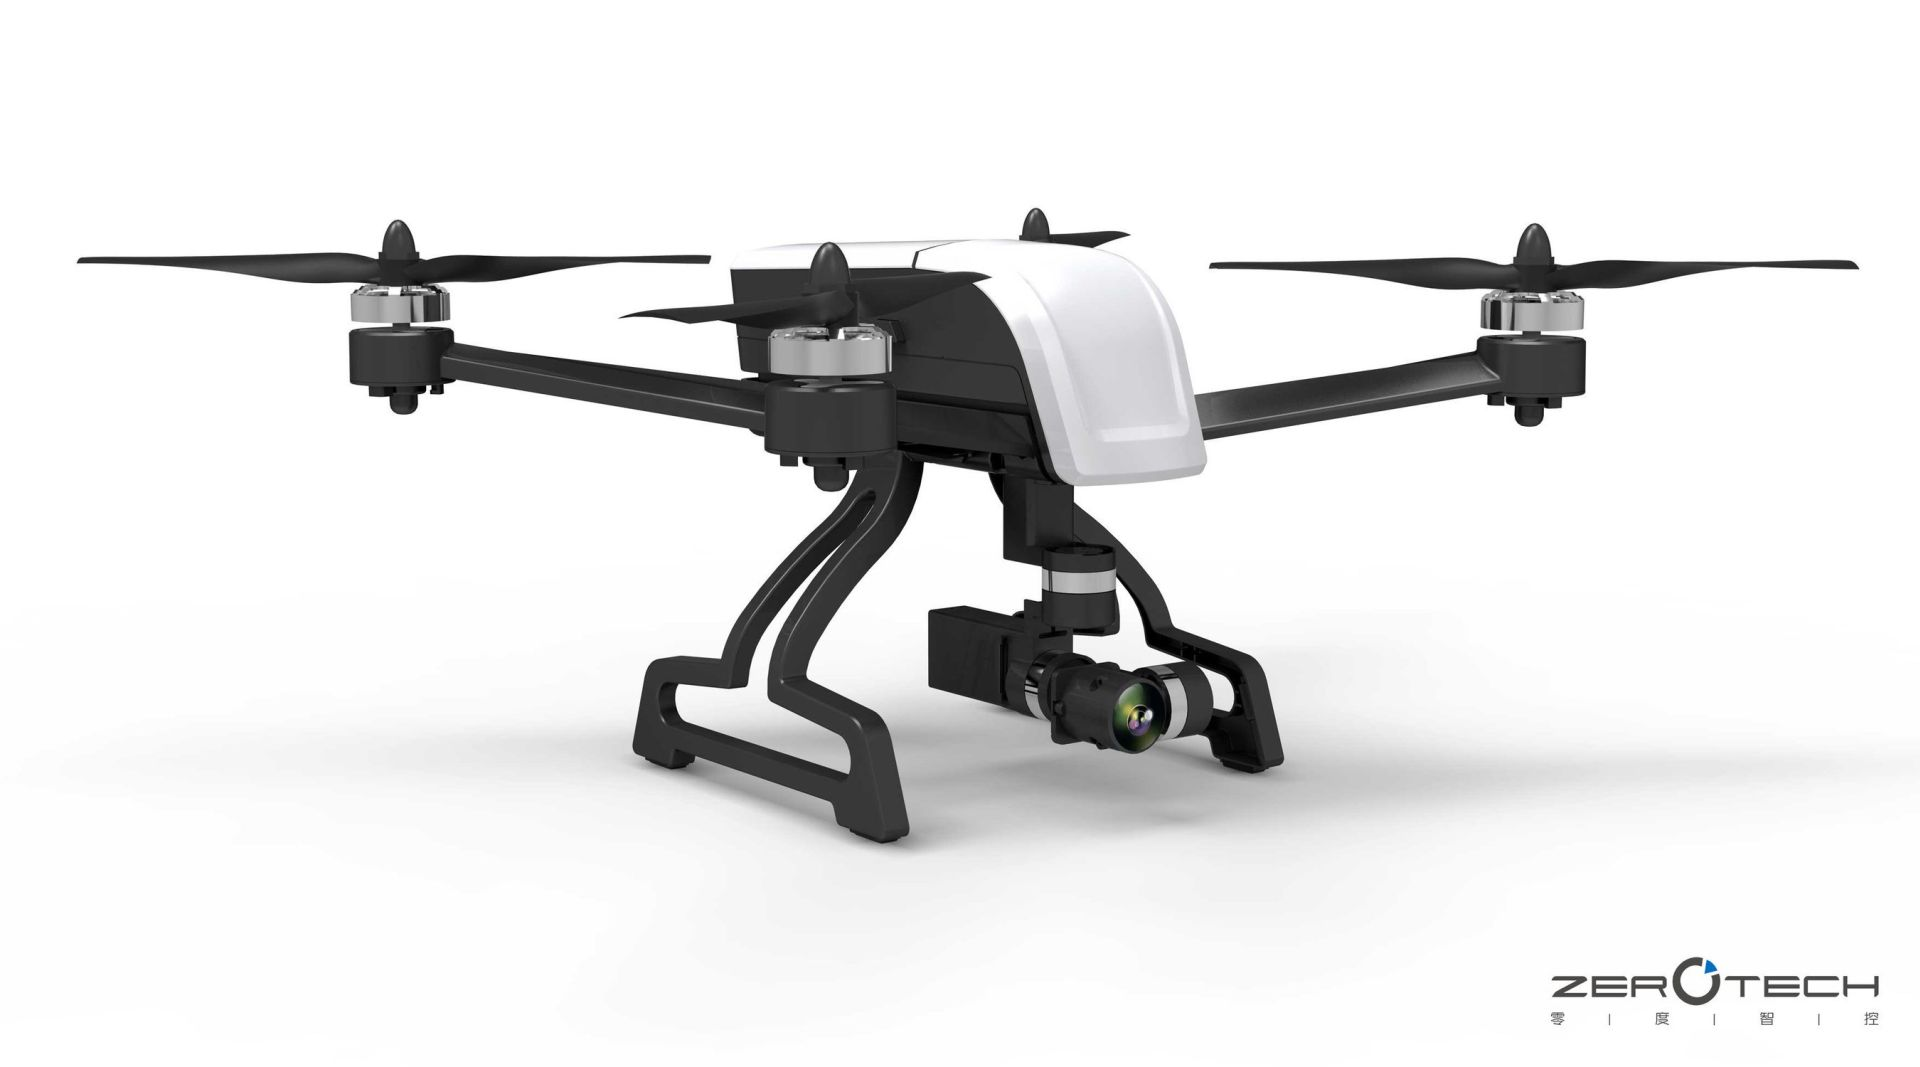 drone delivery amazon with Zerotech Debuts The Most  Pact 4k Drone That Carries Mechanical Stabilization Gimbal 1779 on Index besides Top 3 Tested Cargo Drones in addition Iceland Flytrex Drone Food Delivery additionally Is It A Drone Is It A Race Car Amazon Prime Now Promises 1 Hour Delivery in addition E merce Home Deliveries In The 4 0 Age.